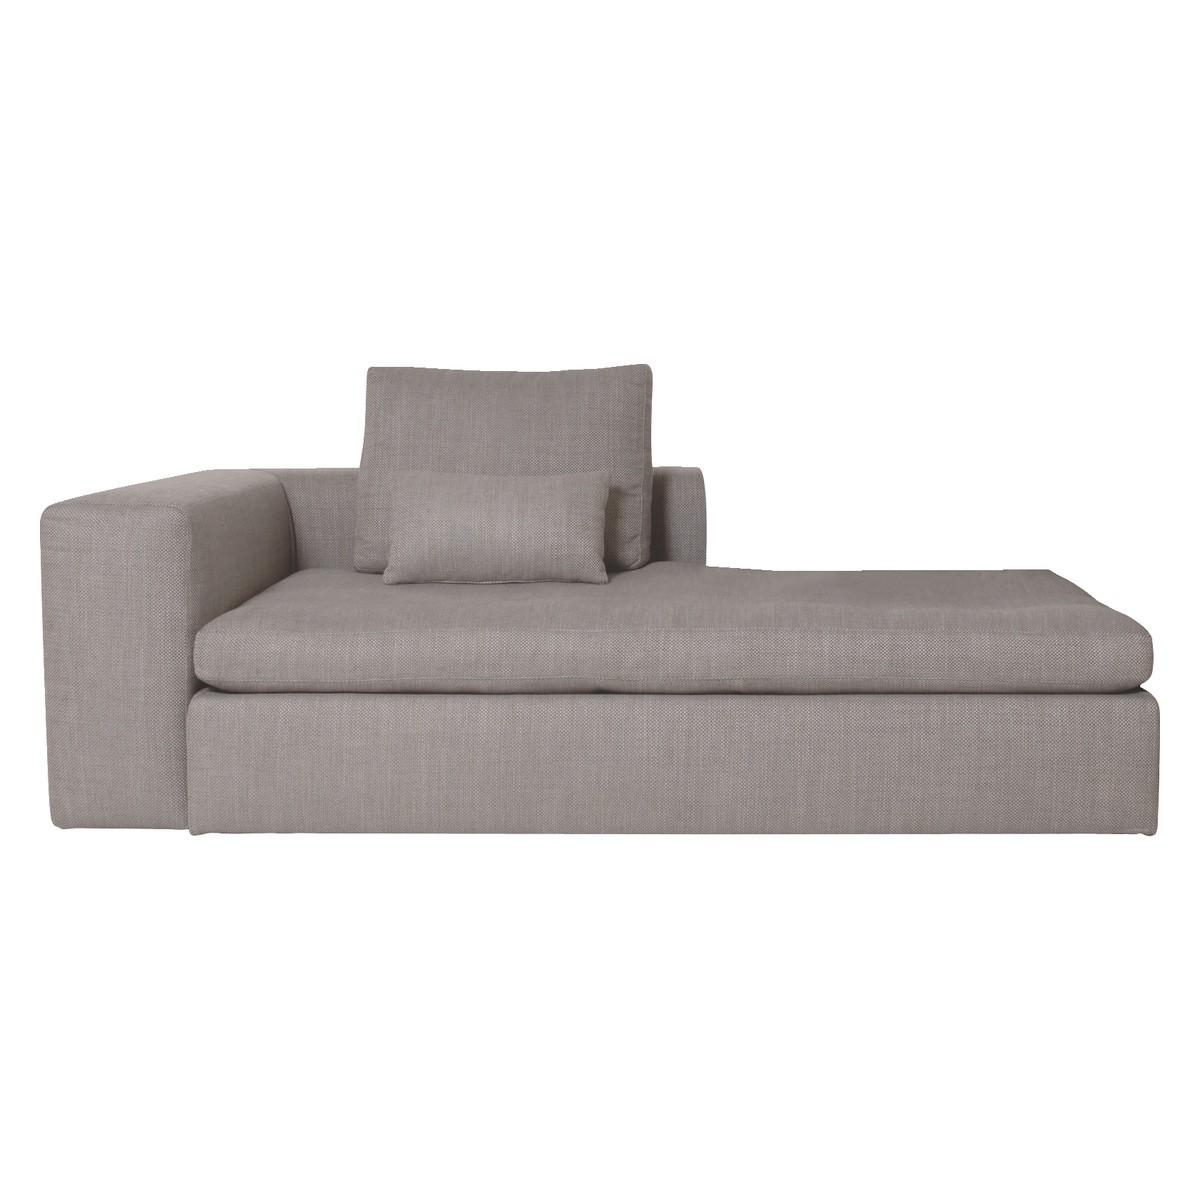 Featured Image of Chaise Longue Sofa Beds